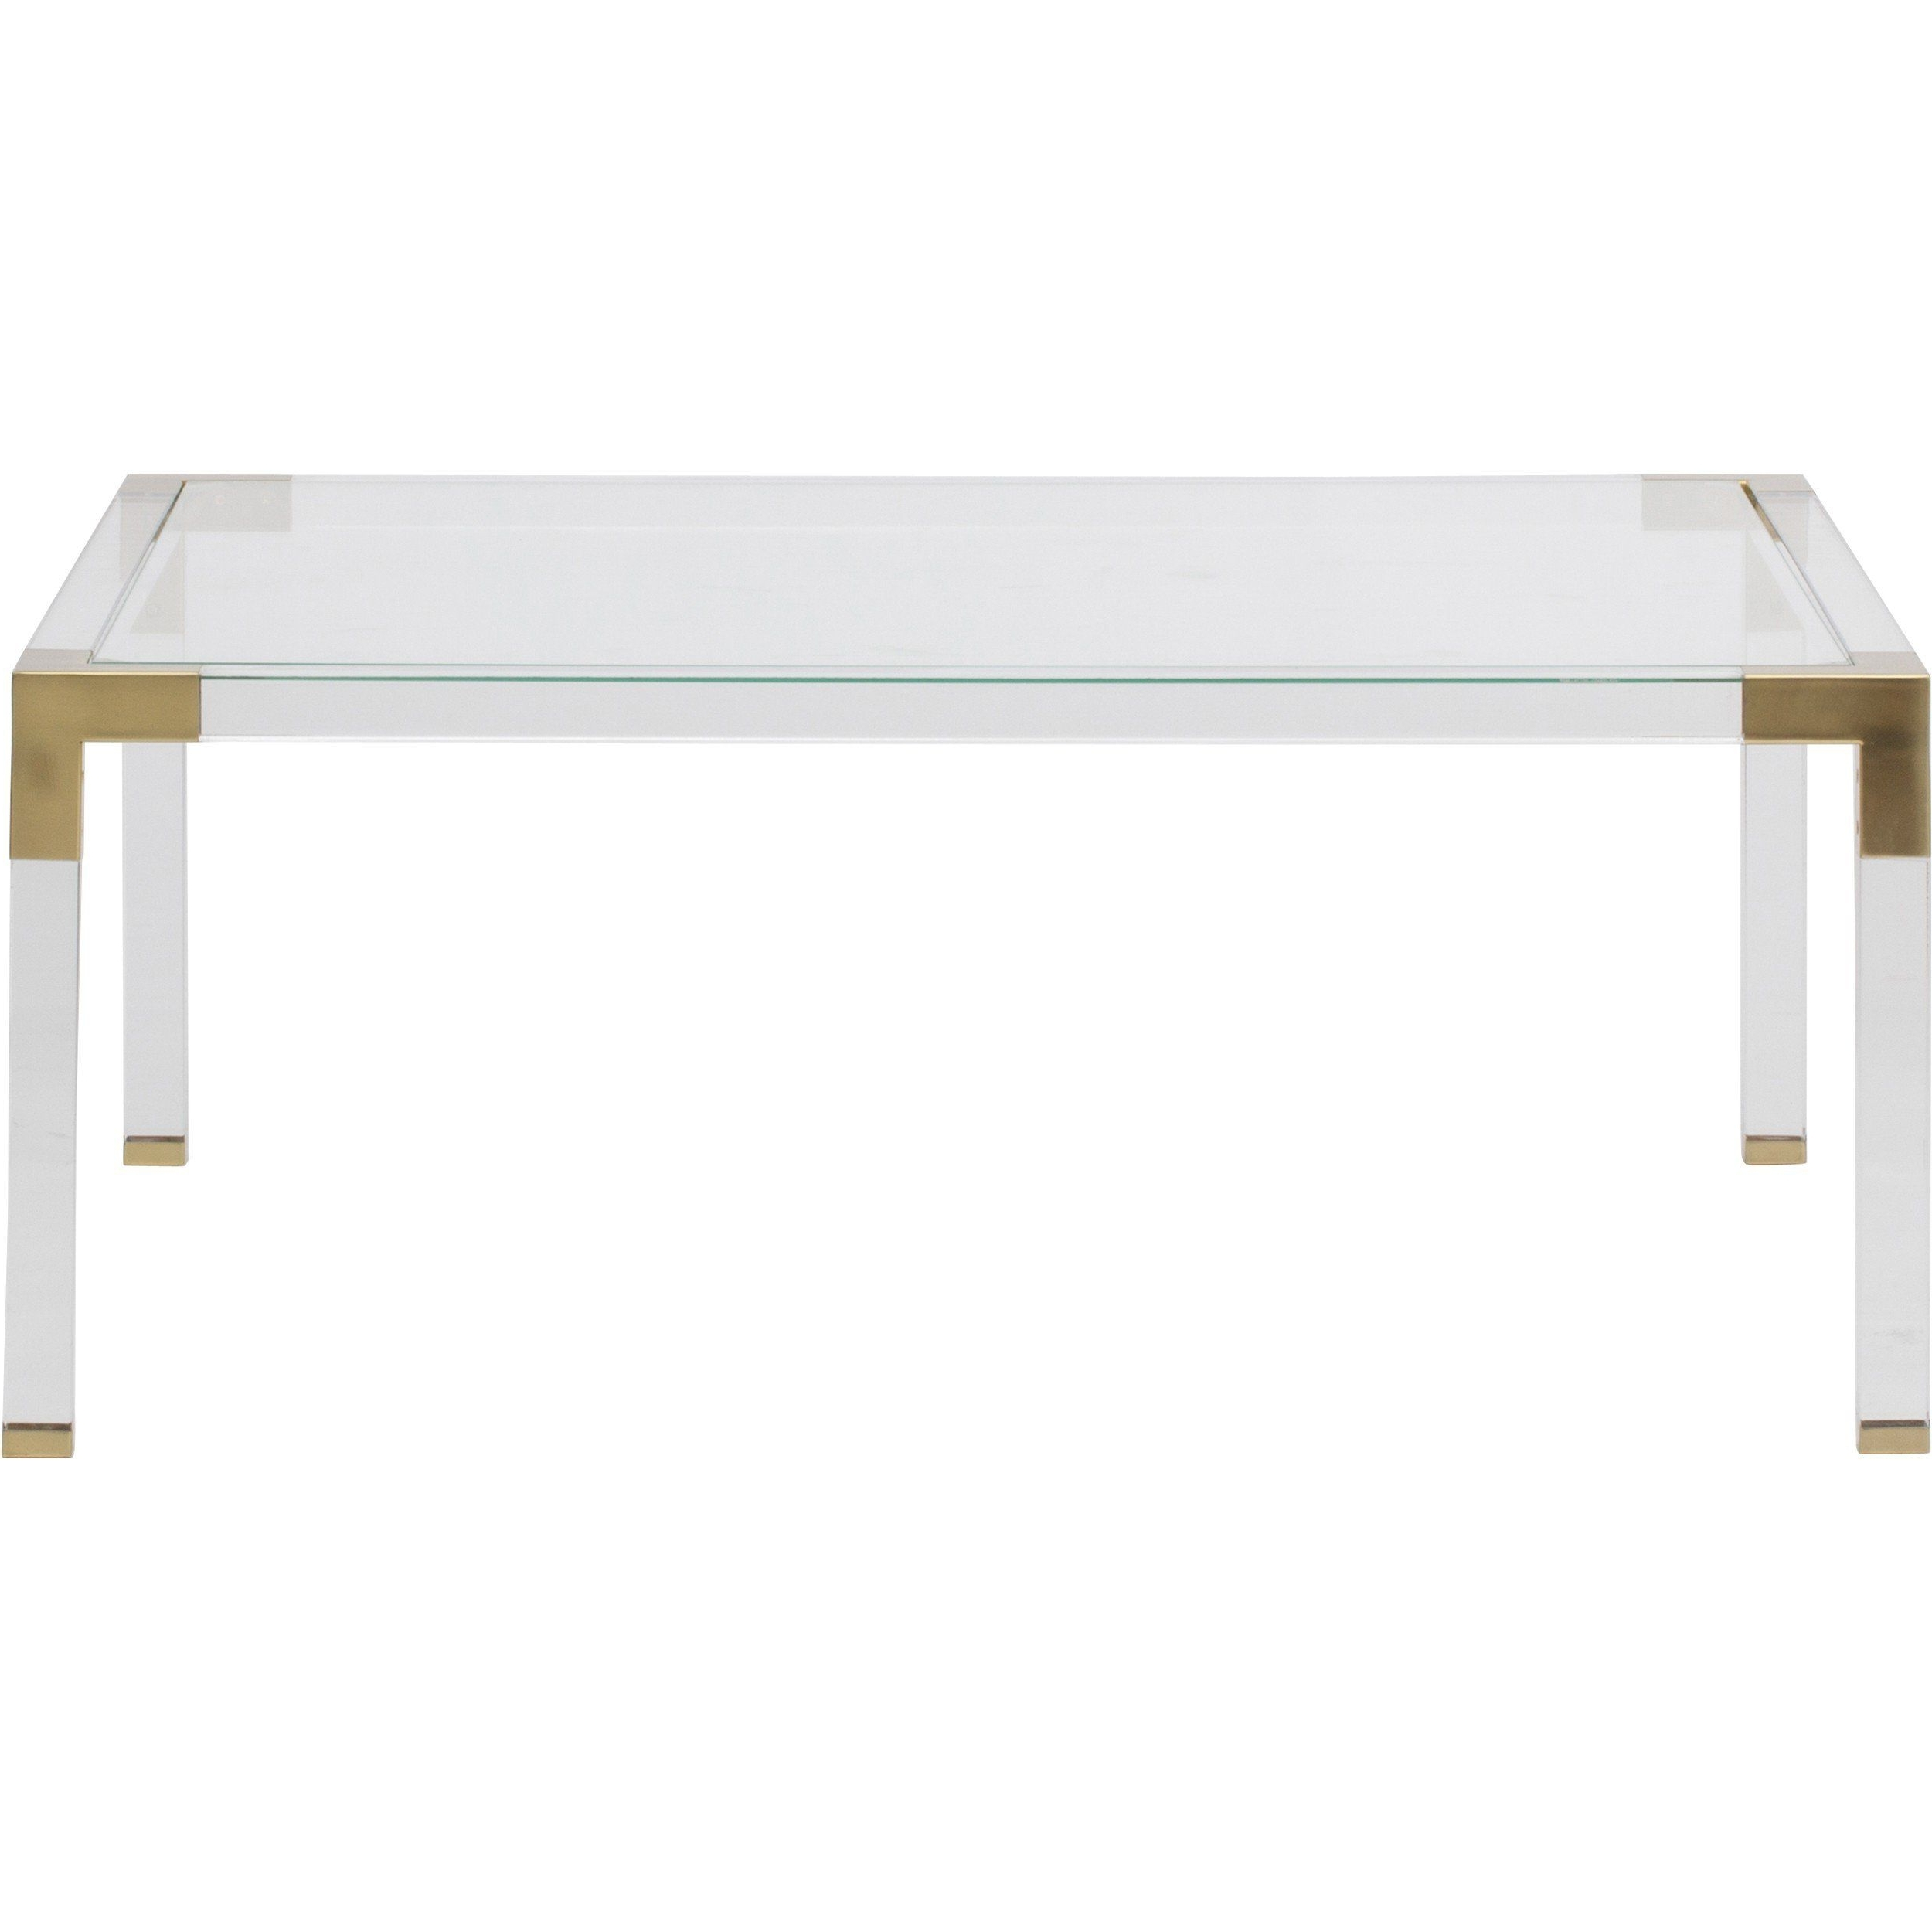 Well Known Slab Large Marble Coffee Tables With Brass Base Within Maci Acrylic Coffee Table (View 16 of 20)